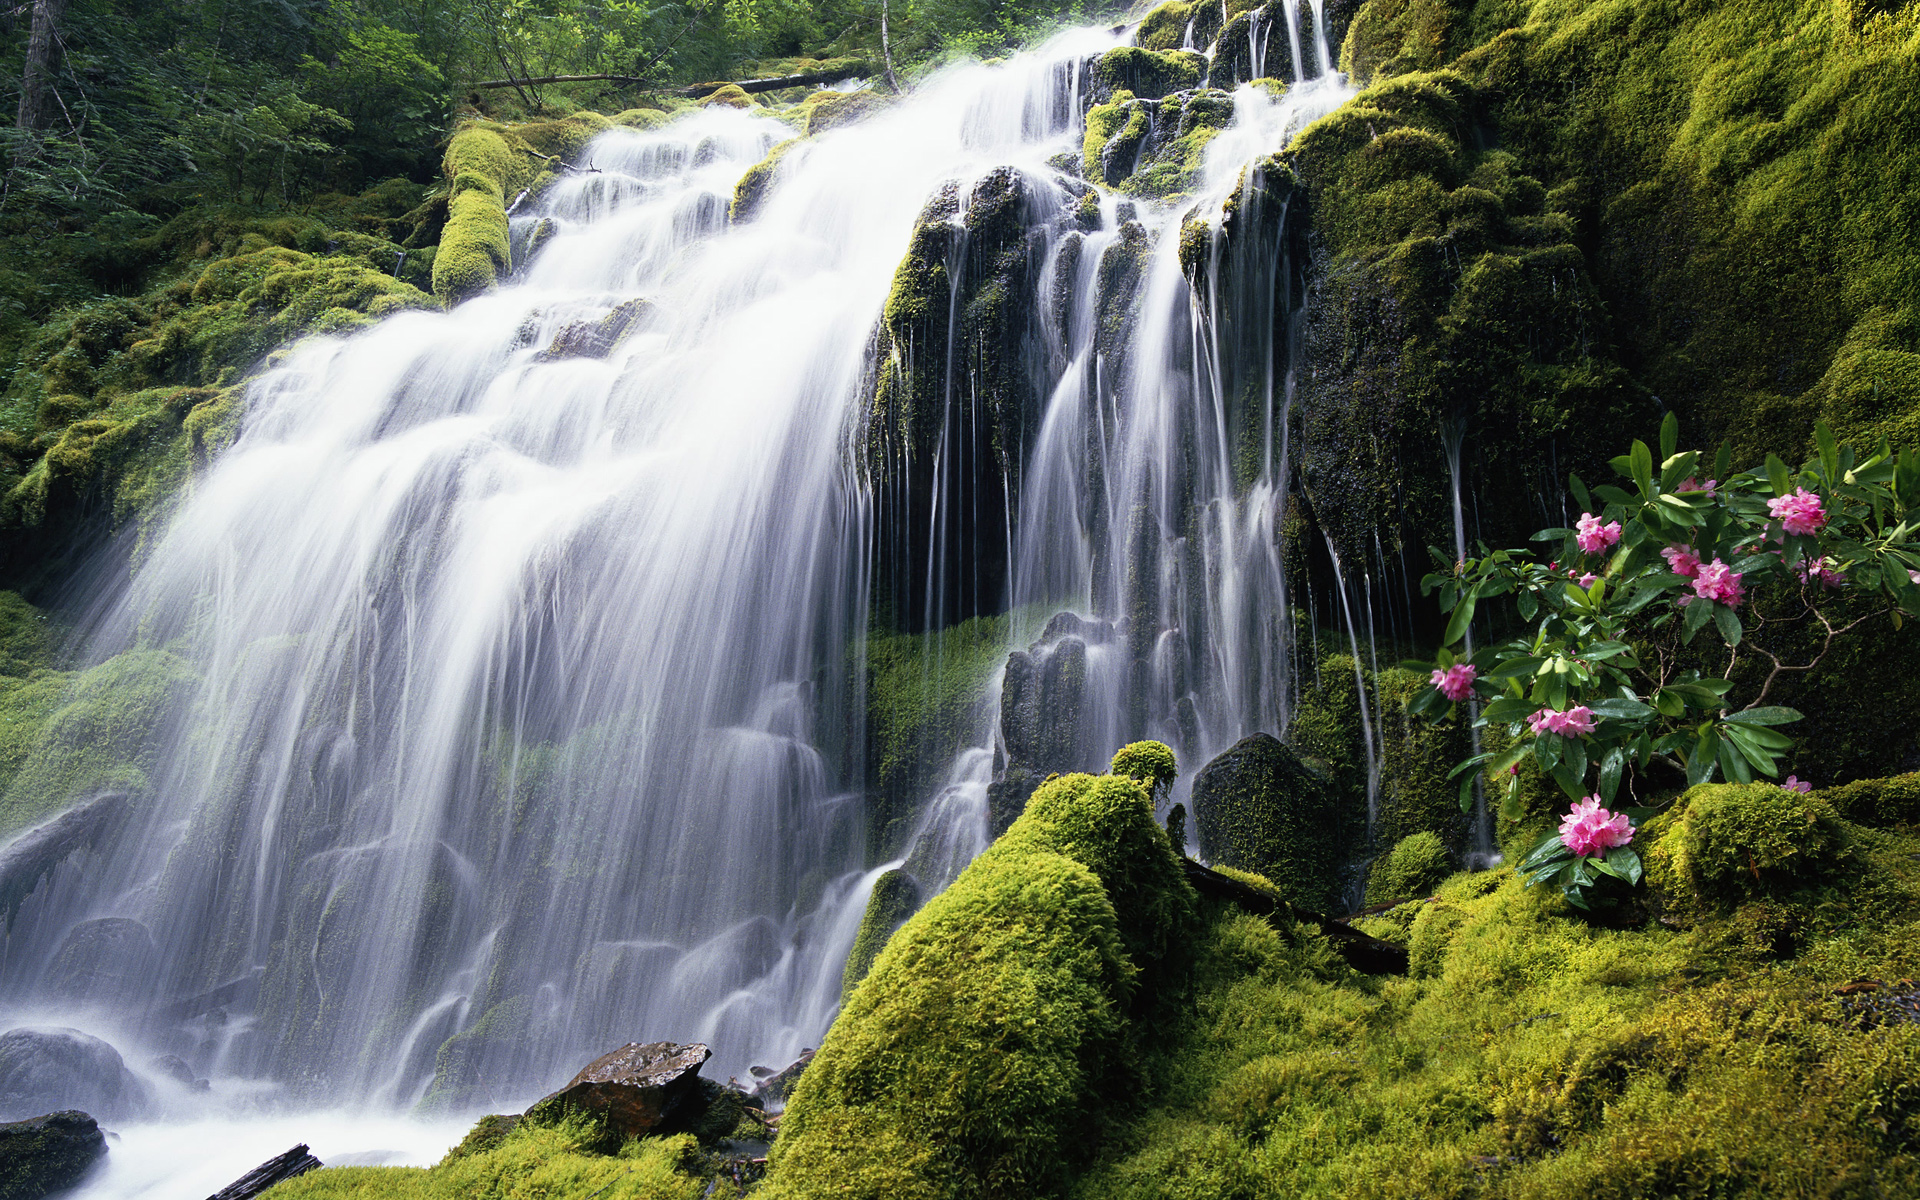 Forest Waterfall HD Wallpaper 1920x1200 | ImageBank.